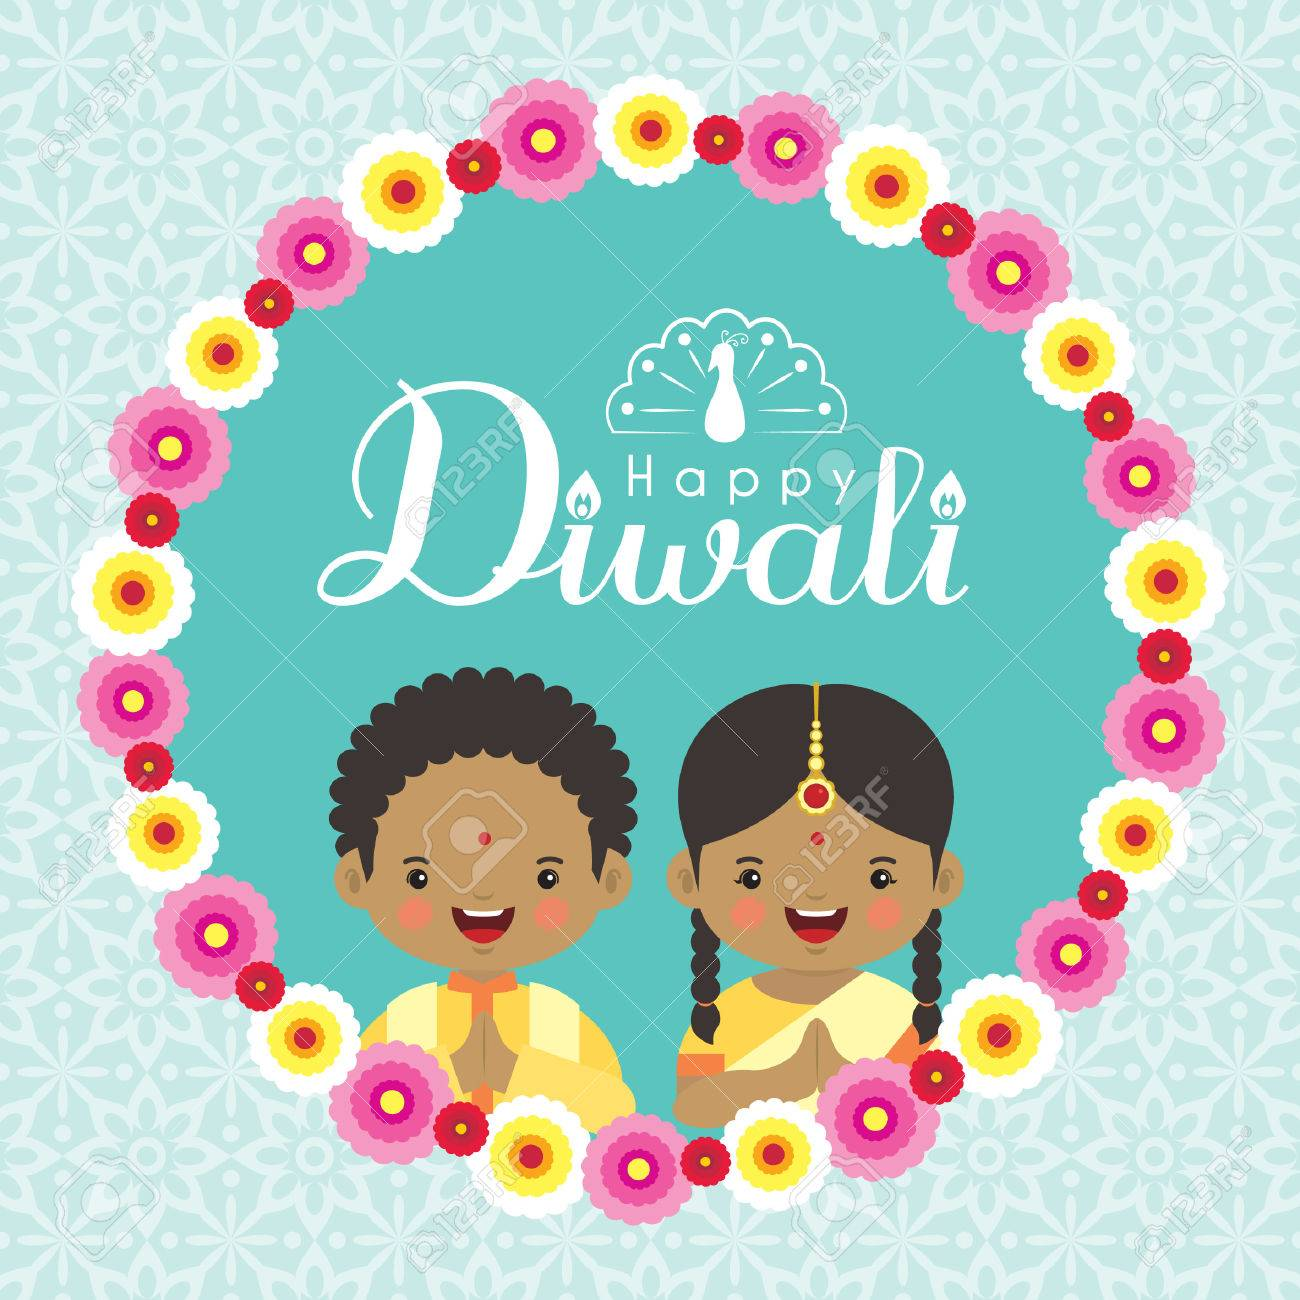 Diwali Or Deepavali Greeting Cardd With Cute India Kids And Floral